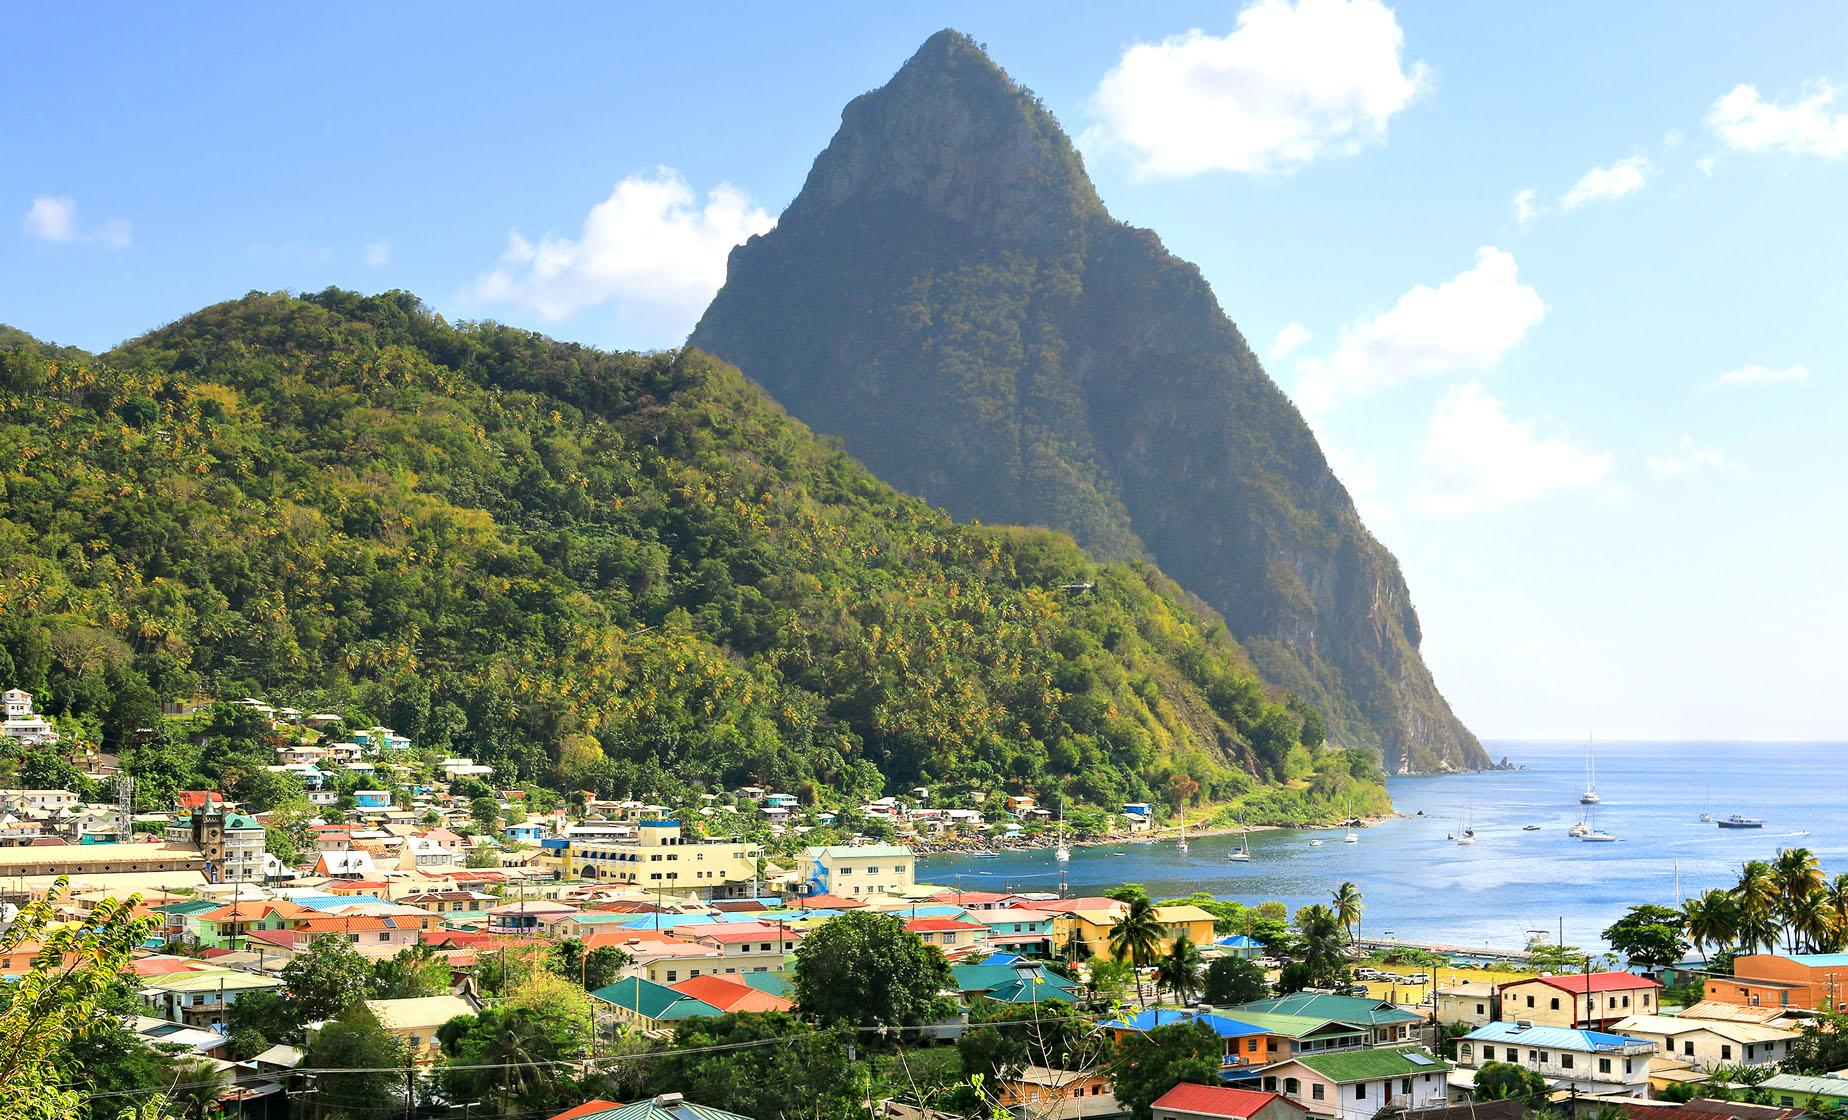 St. Lucia Island Tour Excursion Reviews - Cruise Critic